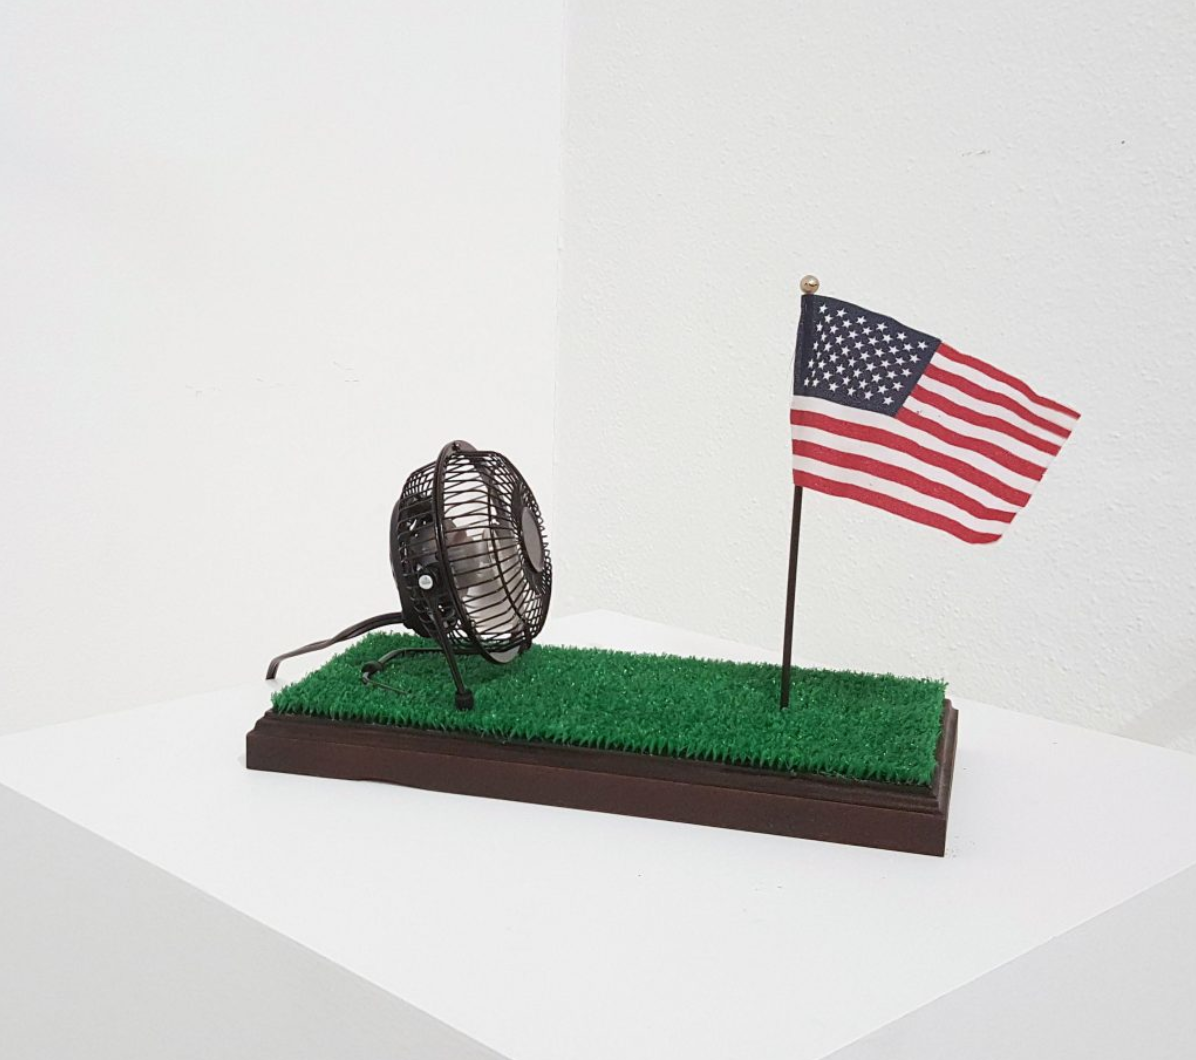 2018, Patriot Kit  Miniature Oak stained pedestal modeled after the Presidential Resolute Desk affixed with artificial lawn, chinese made nail salon fan, and mini flag.